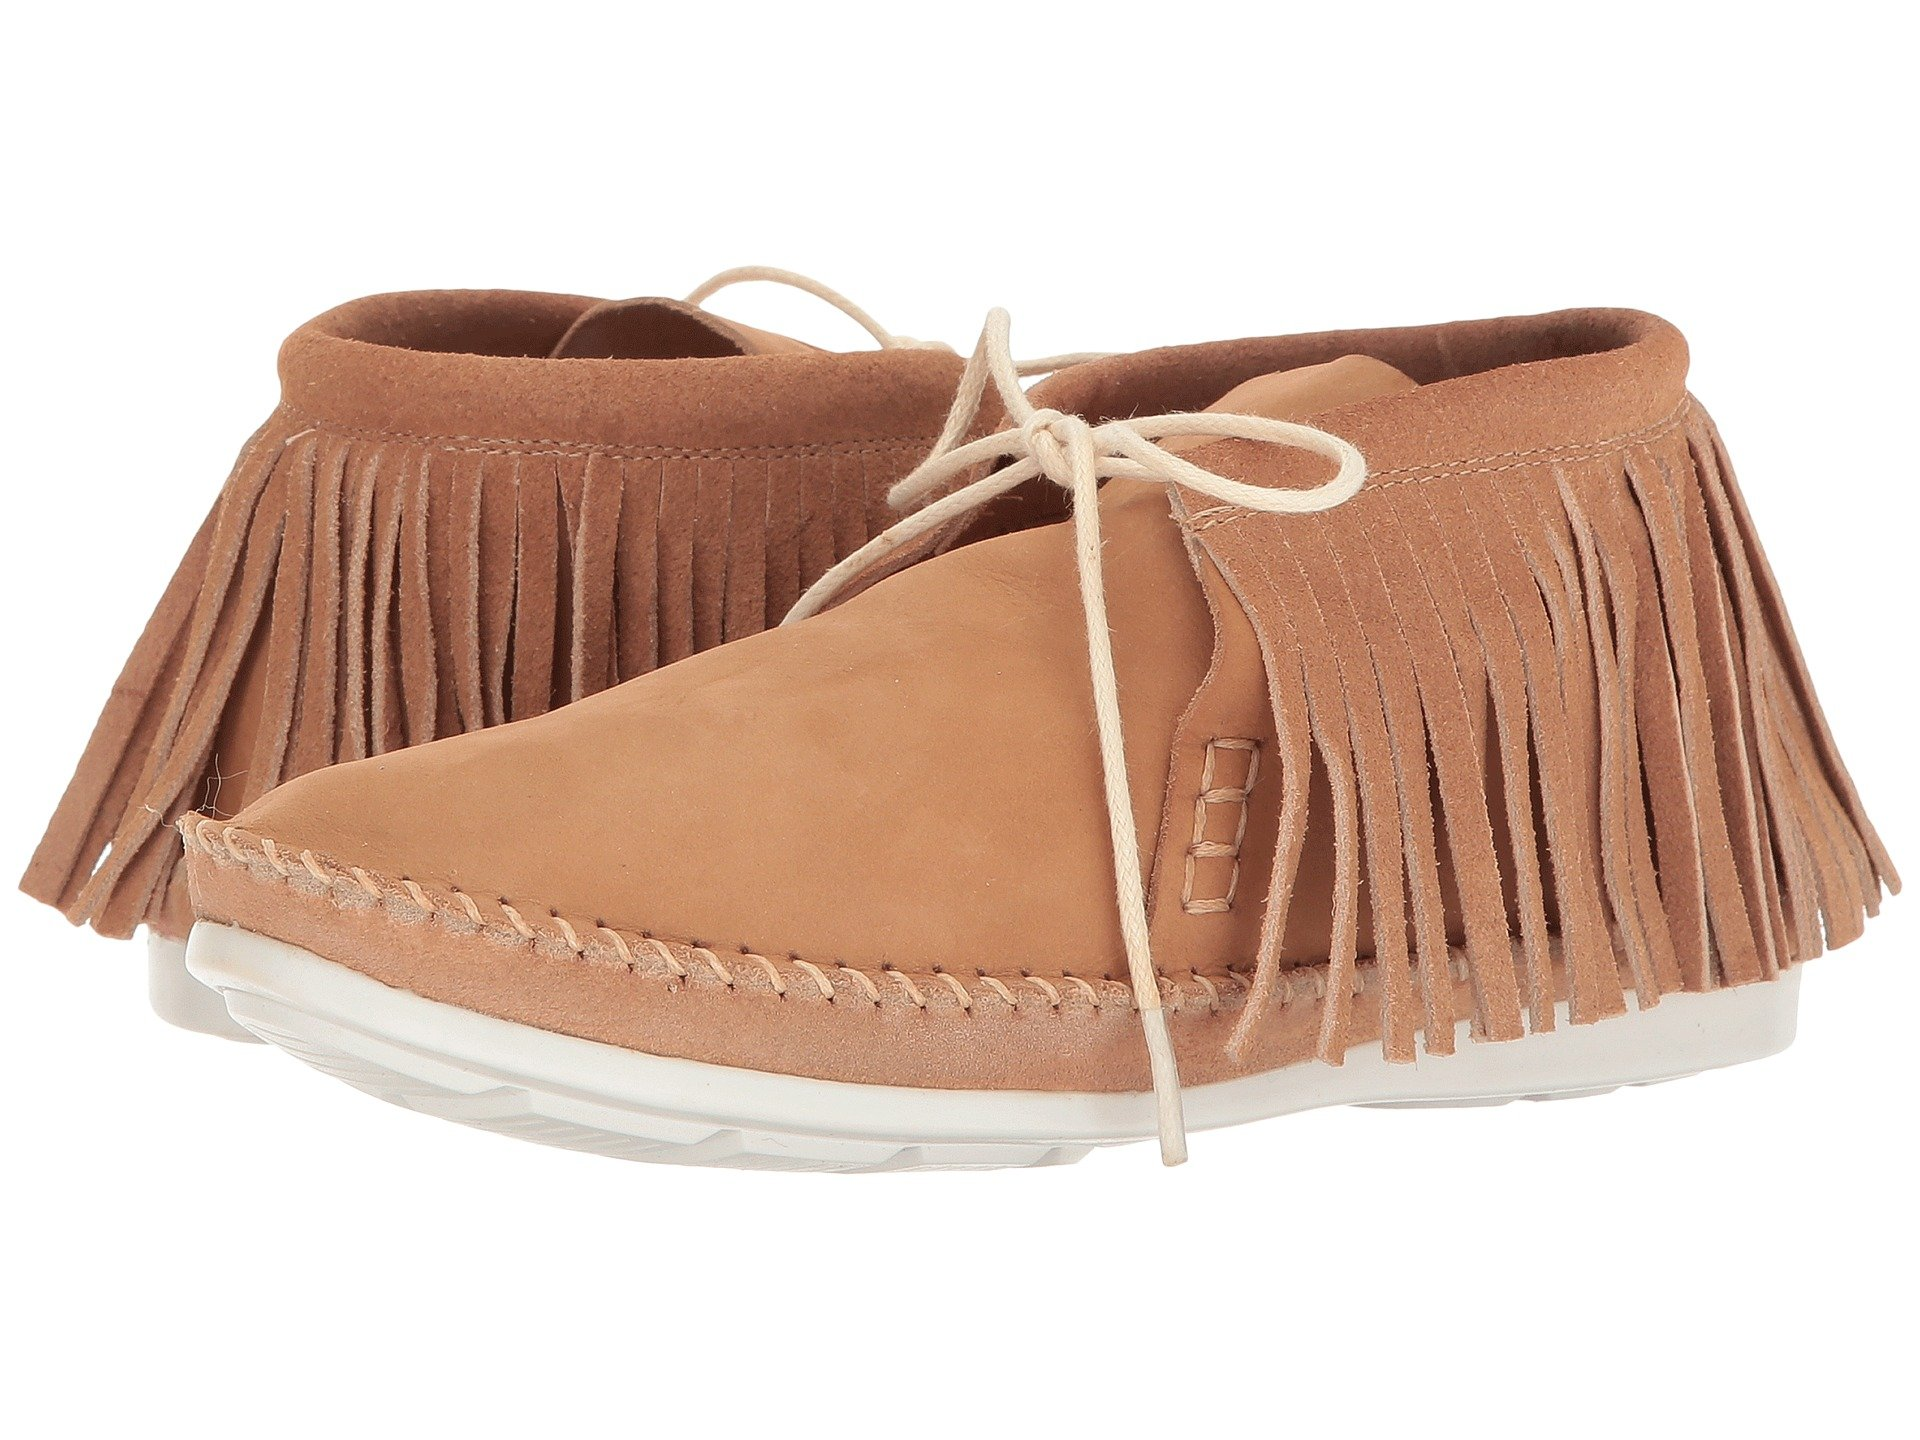 WARM CREATURE Fringe, Blush